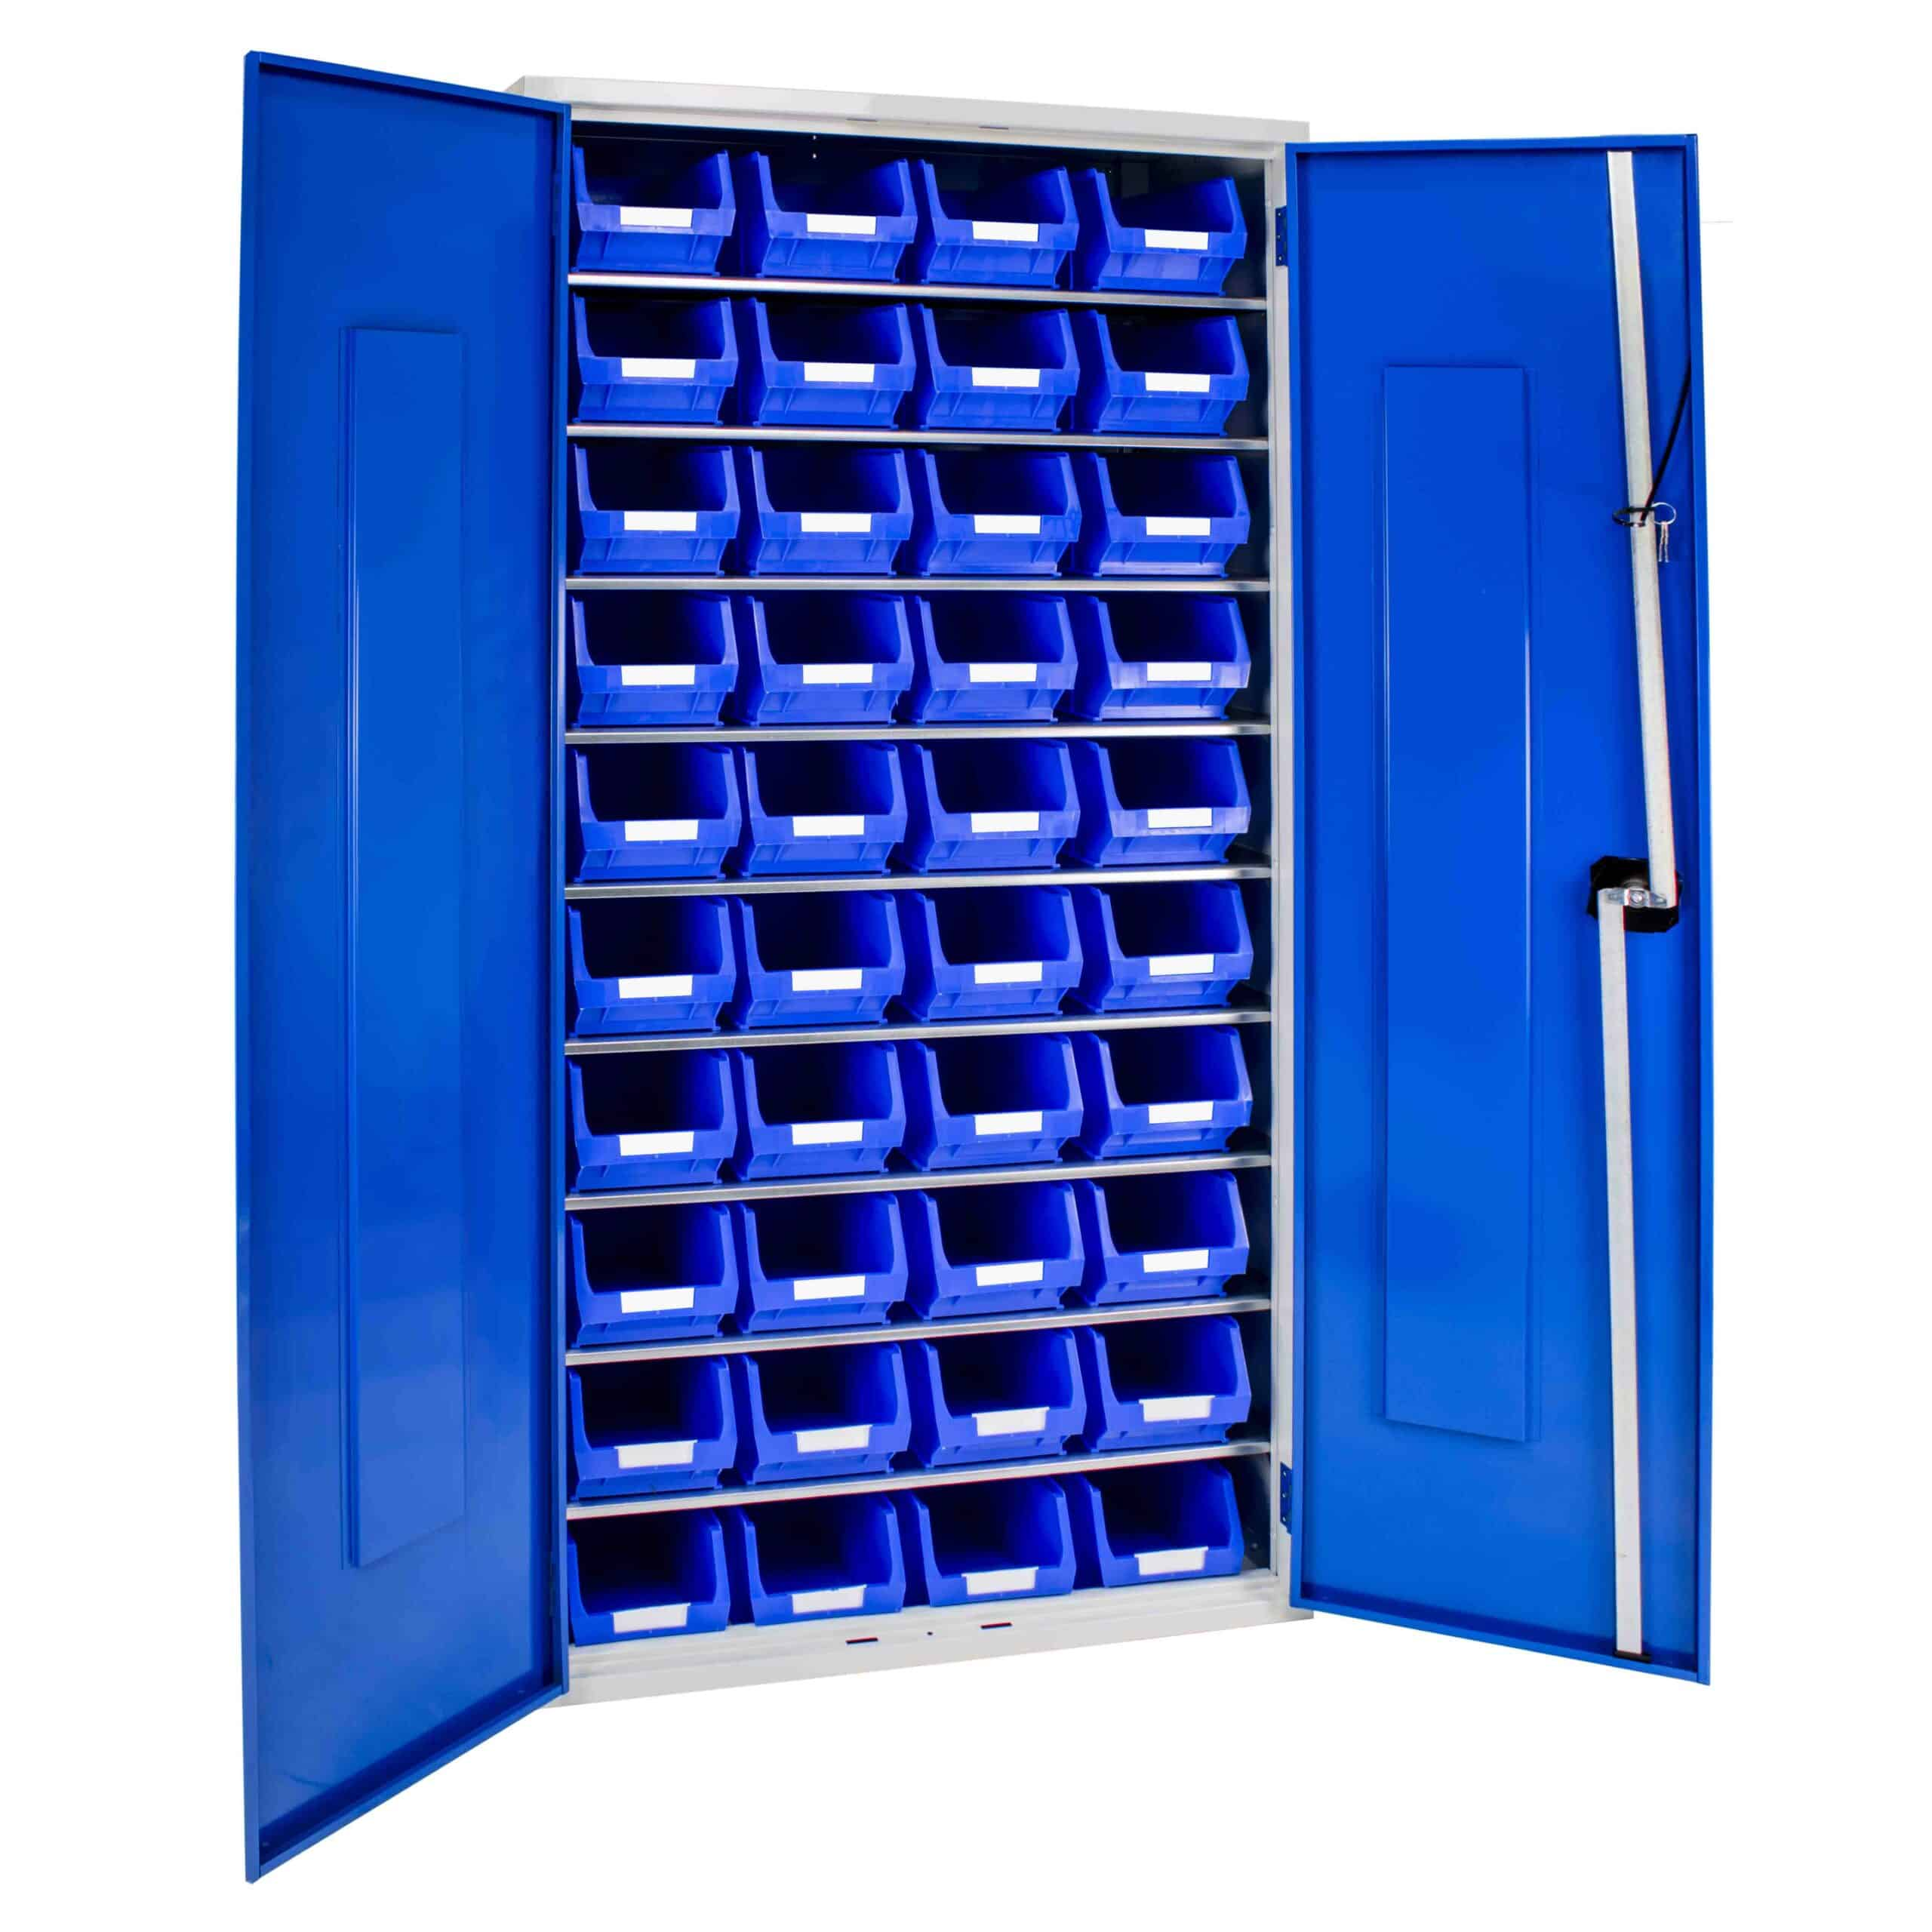 Container Cabinet with 40 TC3 Bins